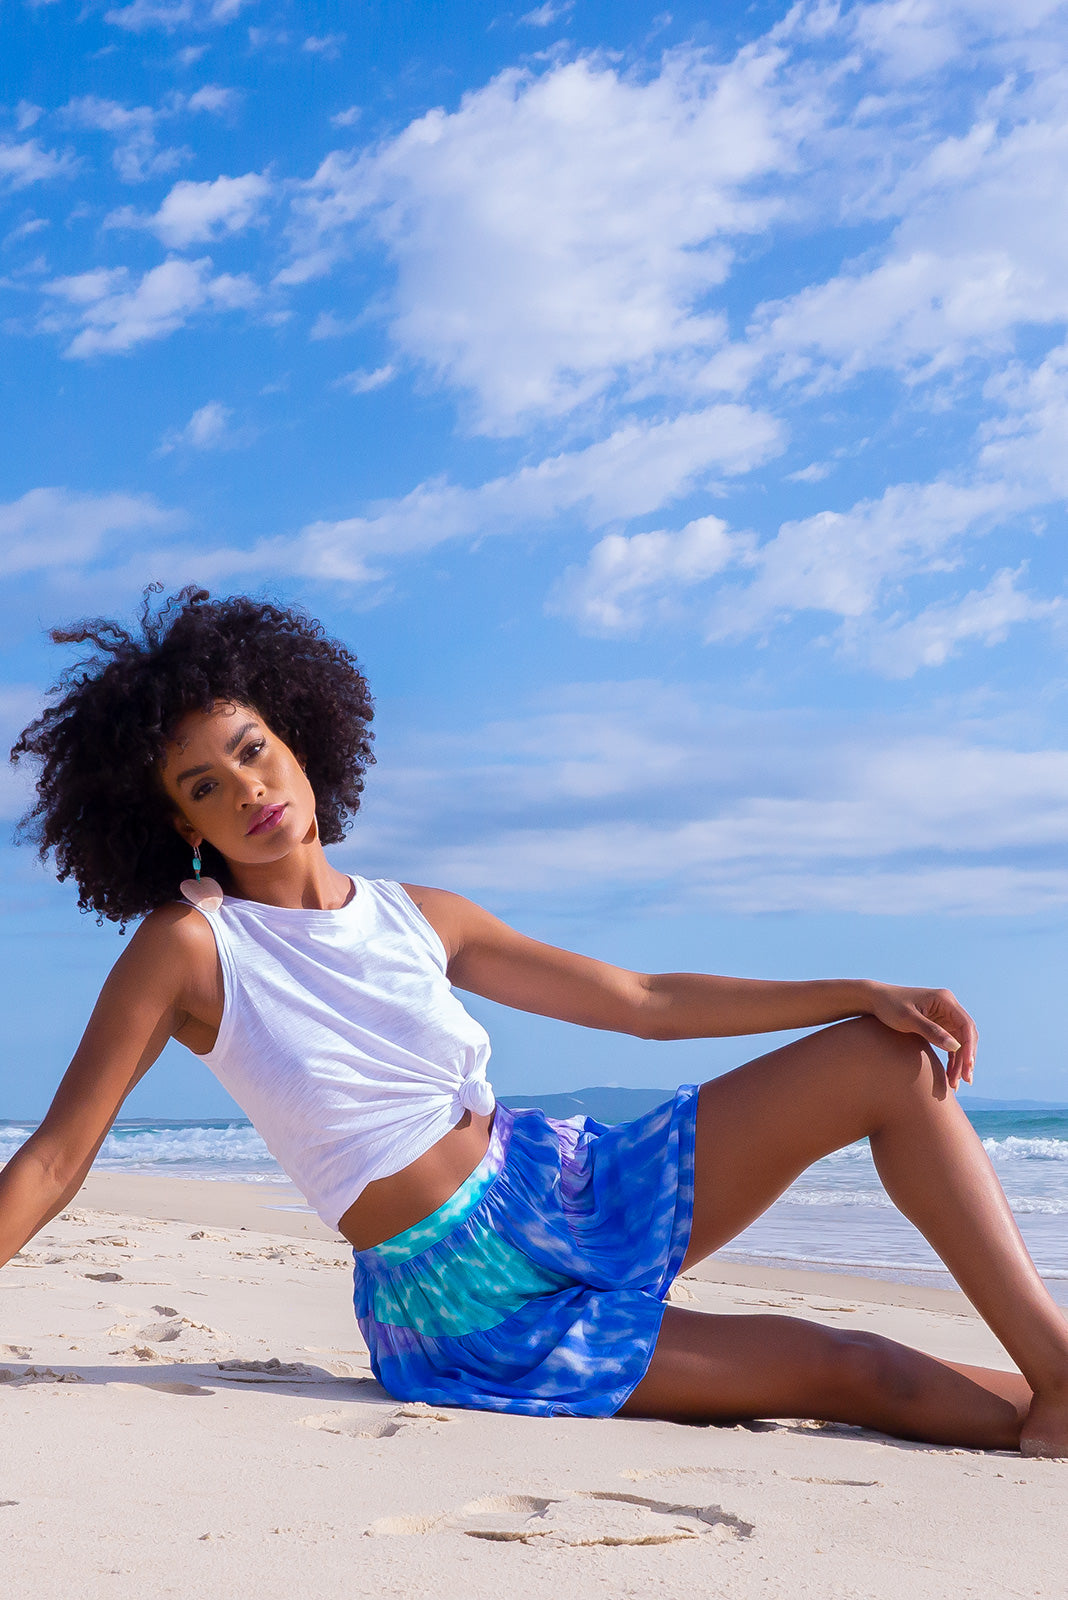 The Day Tripper Ocean Ripple Shorts are trendy tie dye shorts featuring 100% viscose in rippled cosmic tie dye of blue, white, sea green and purple and have elasticated back waistband, comfortable pull-on style, flouncy gathers on legs, side pockets.